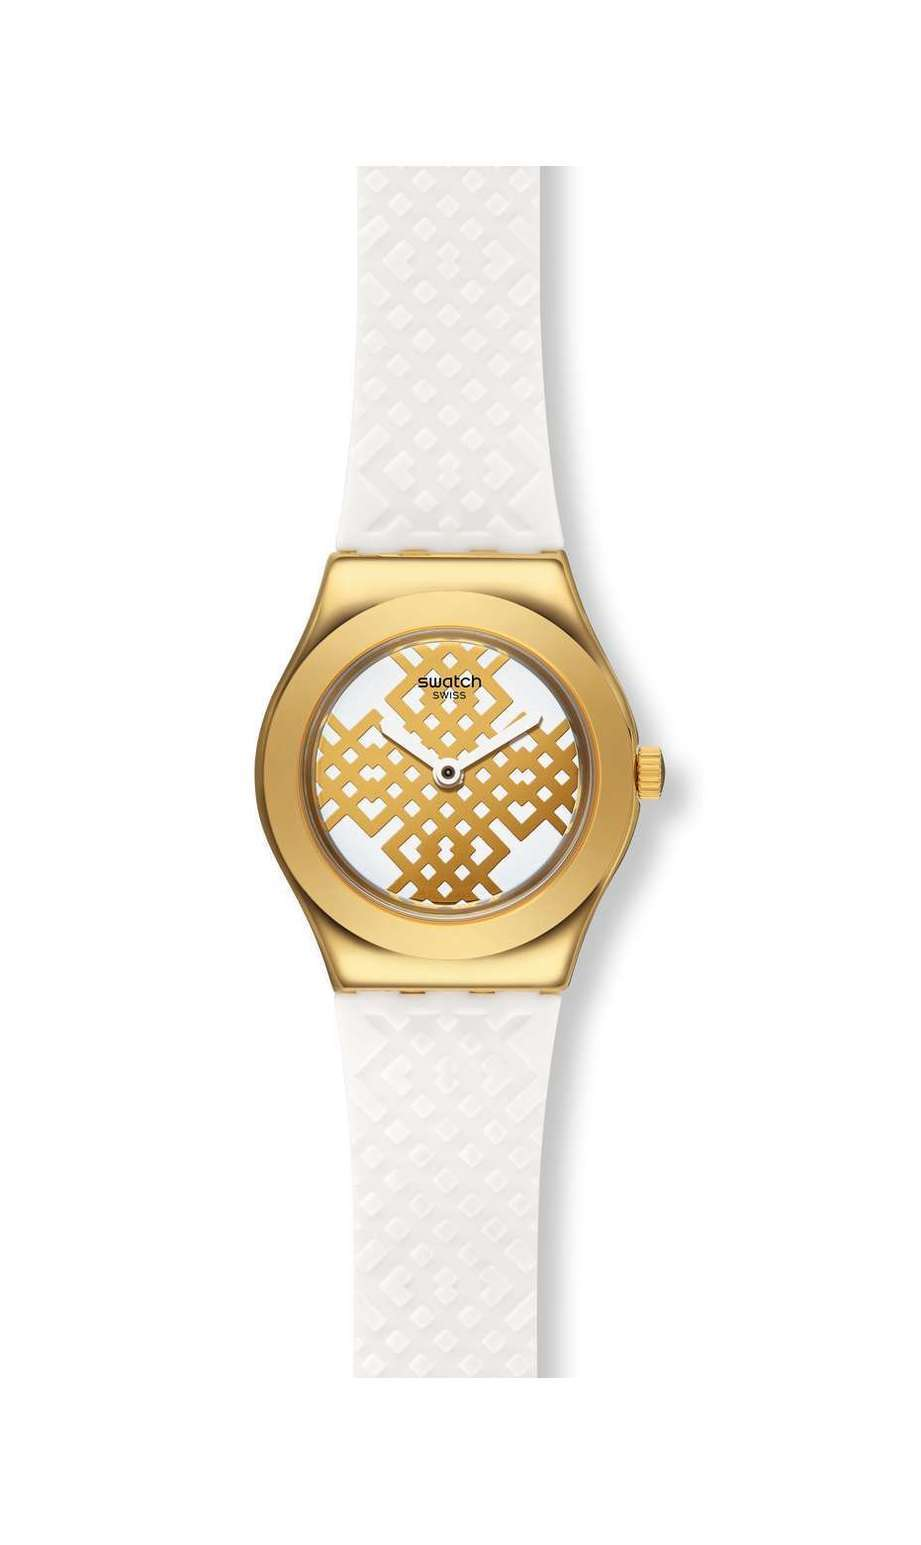 Swatch - MOUCHARABIA - 1